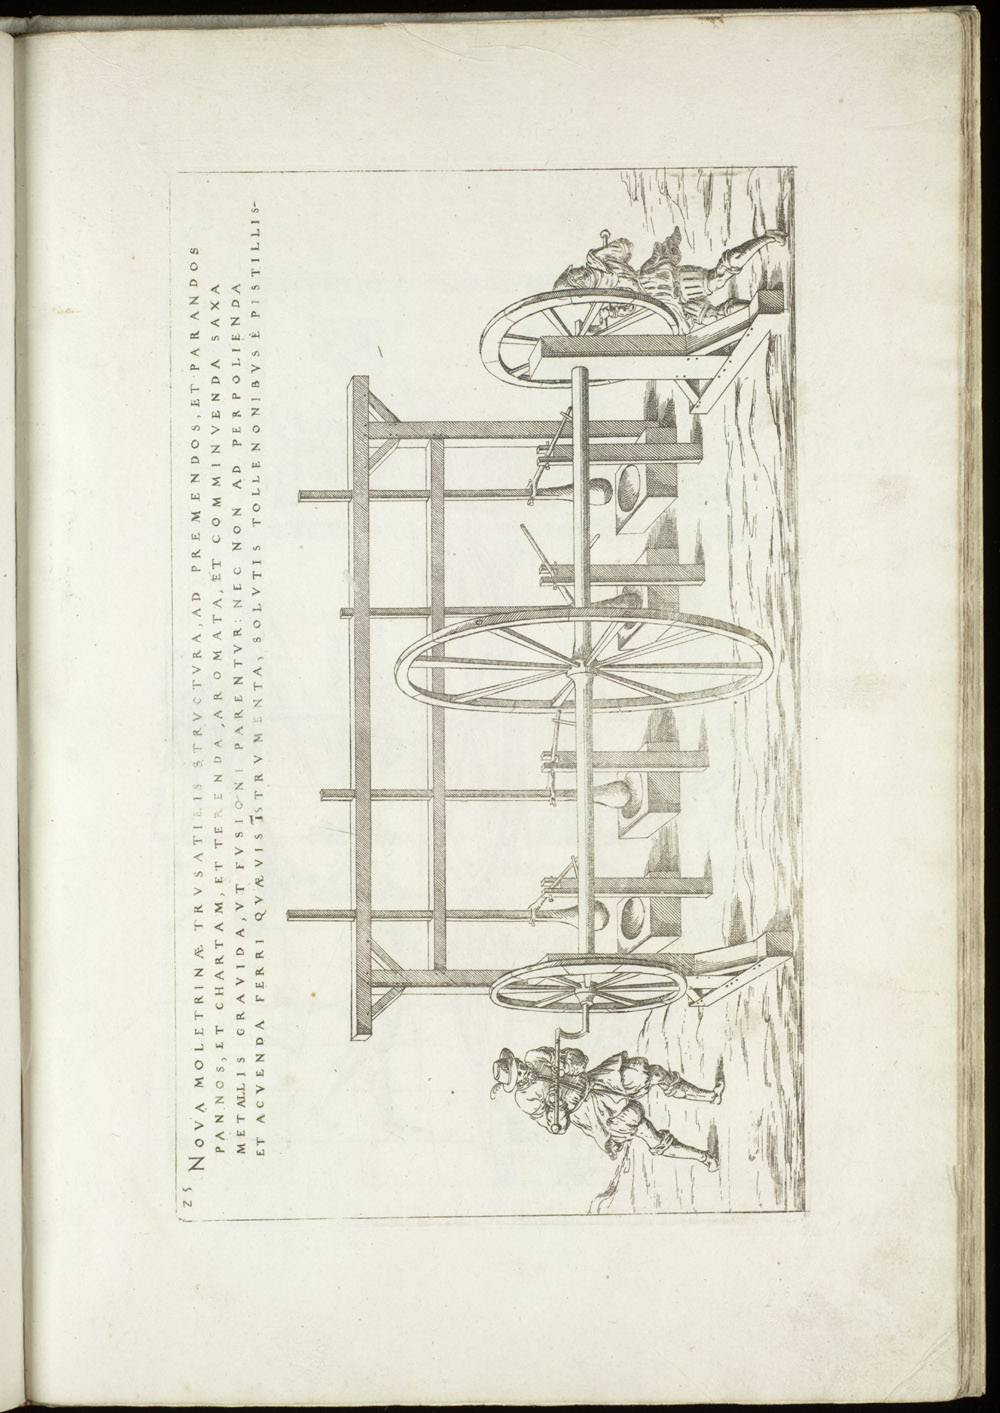 Plate 25 [Hand-cranked crushing mill],  Image number:SIL4-2-83a